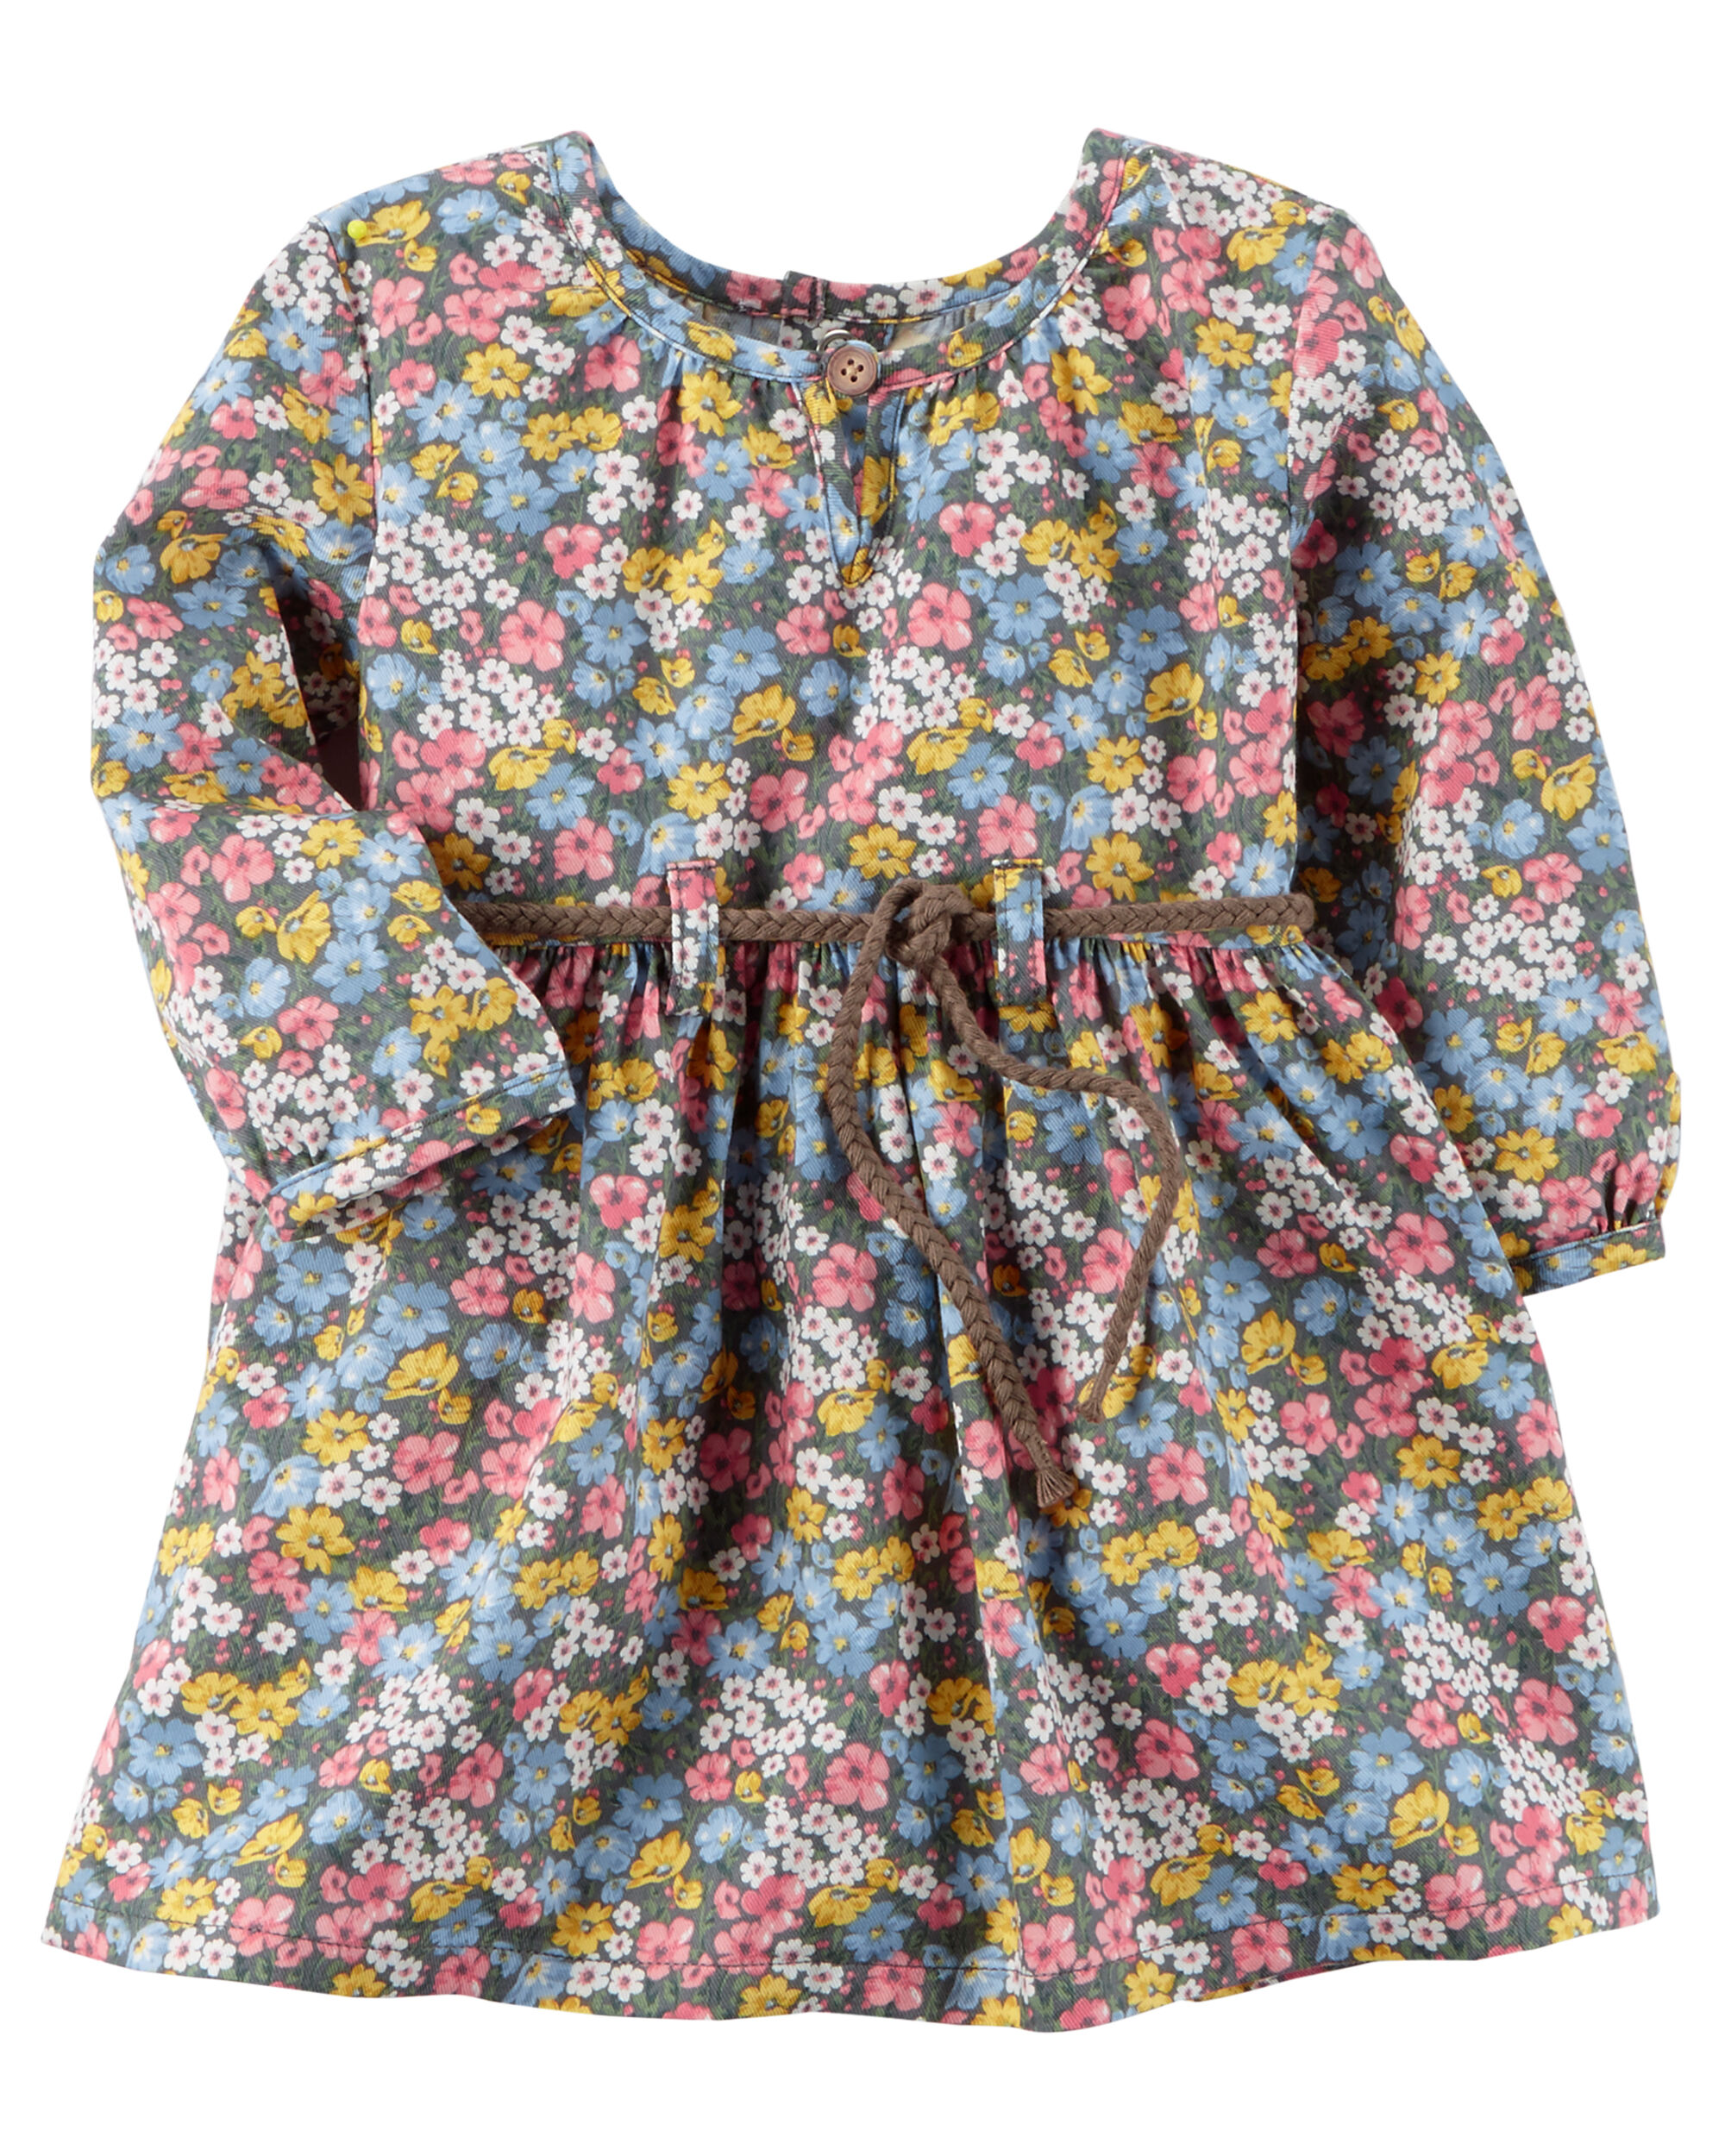 c510a1400 Baby Girl Floral Twill Dress | Carters.com